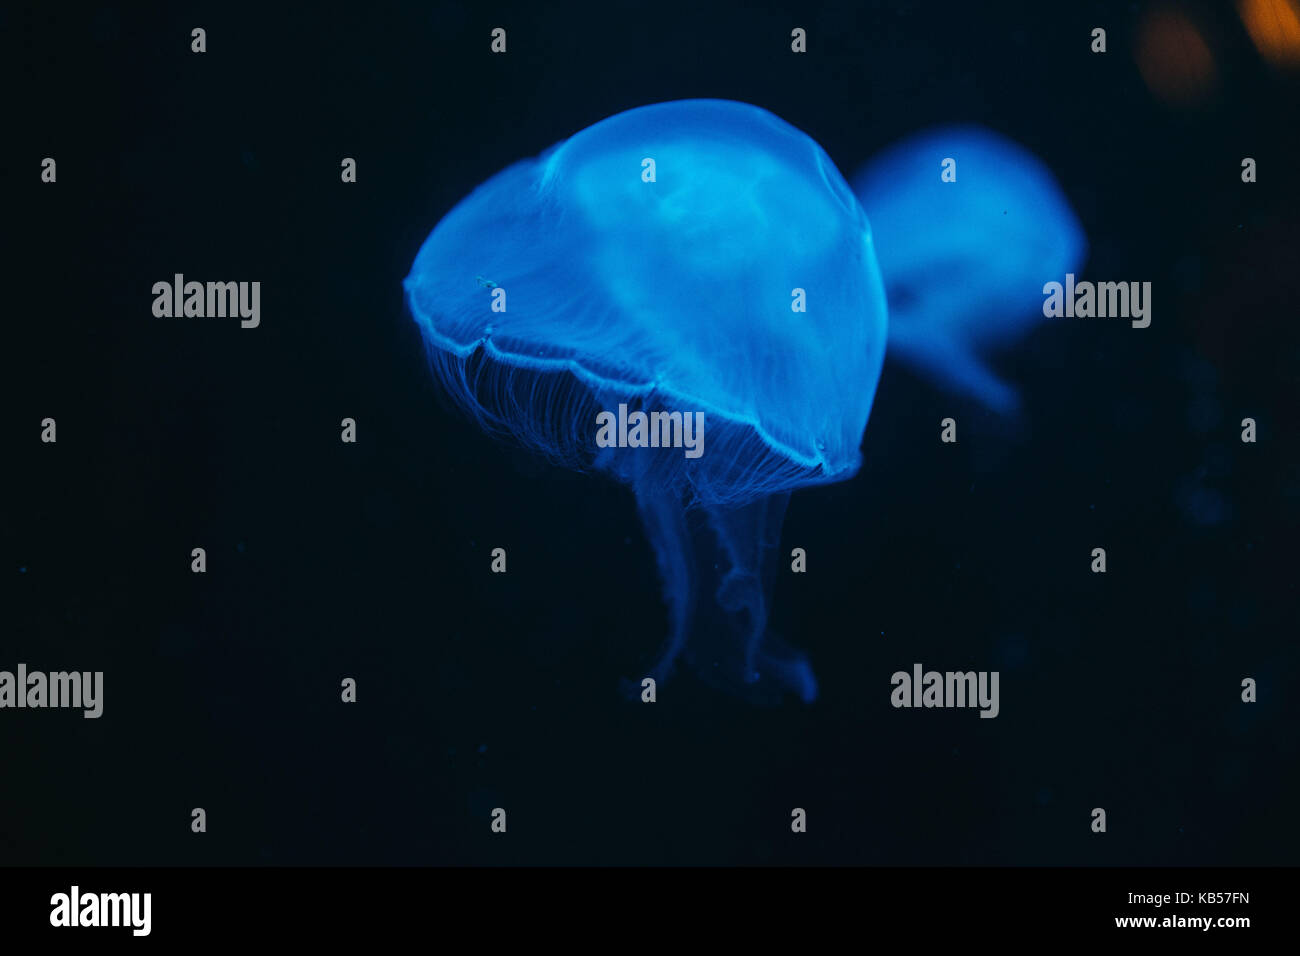 Blue jellyfish under water, close-up - Stock Image